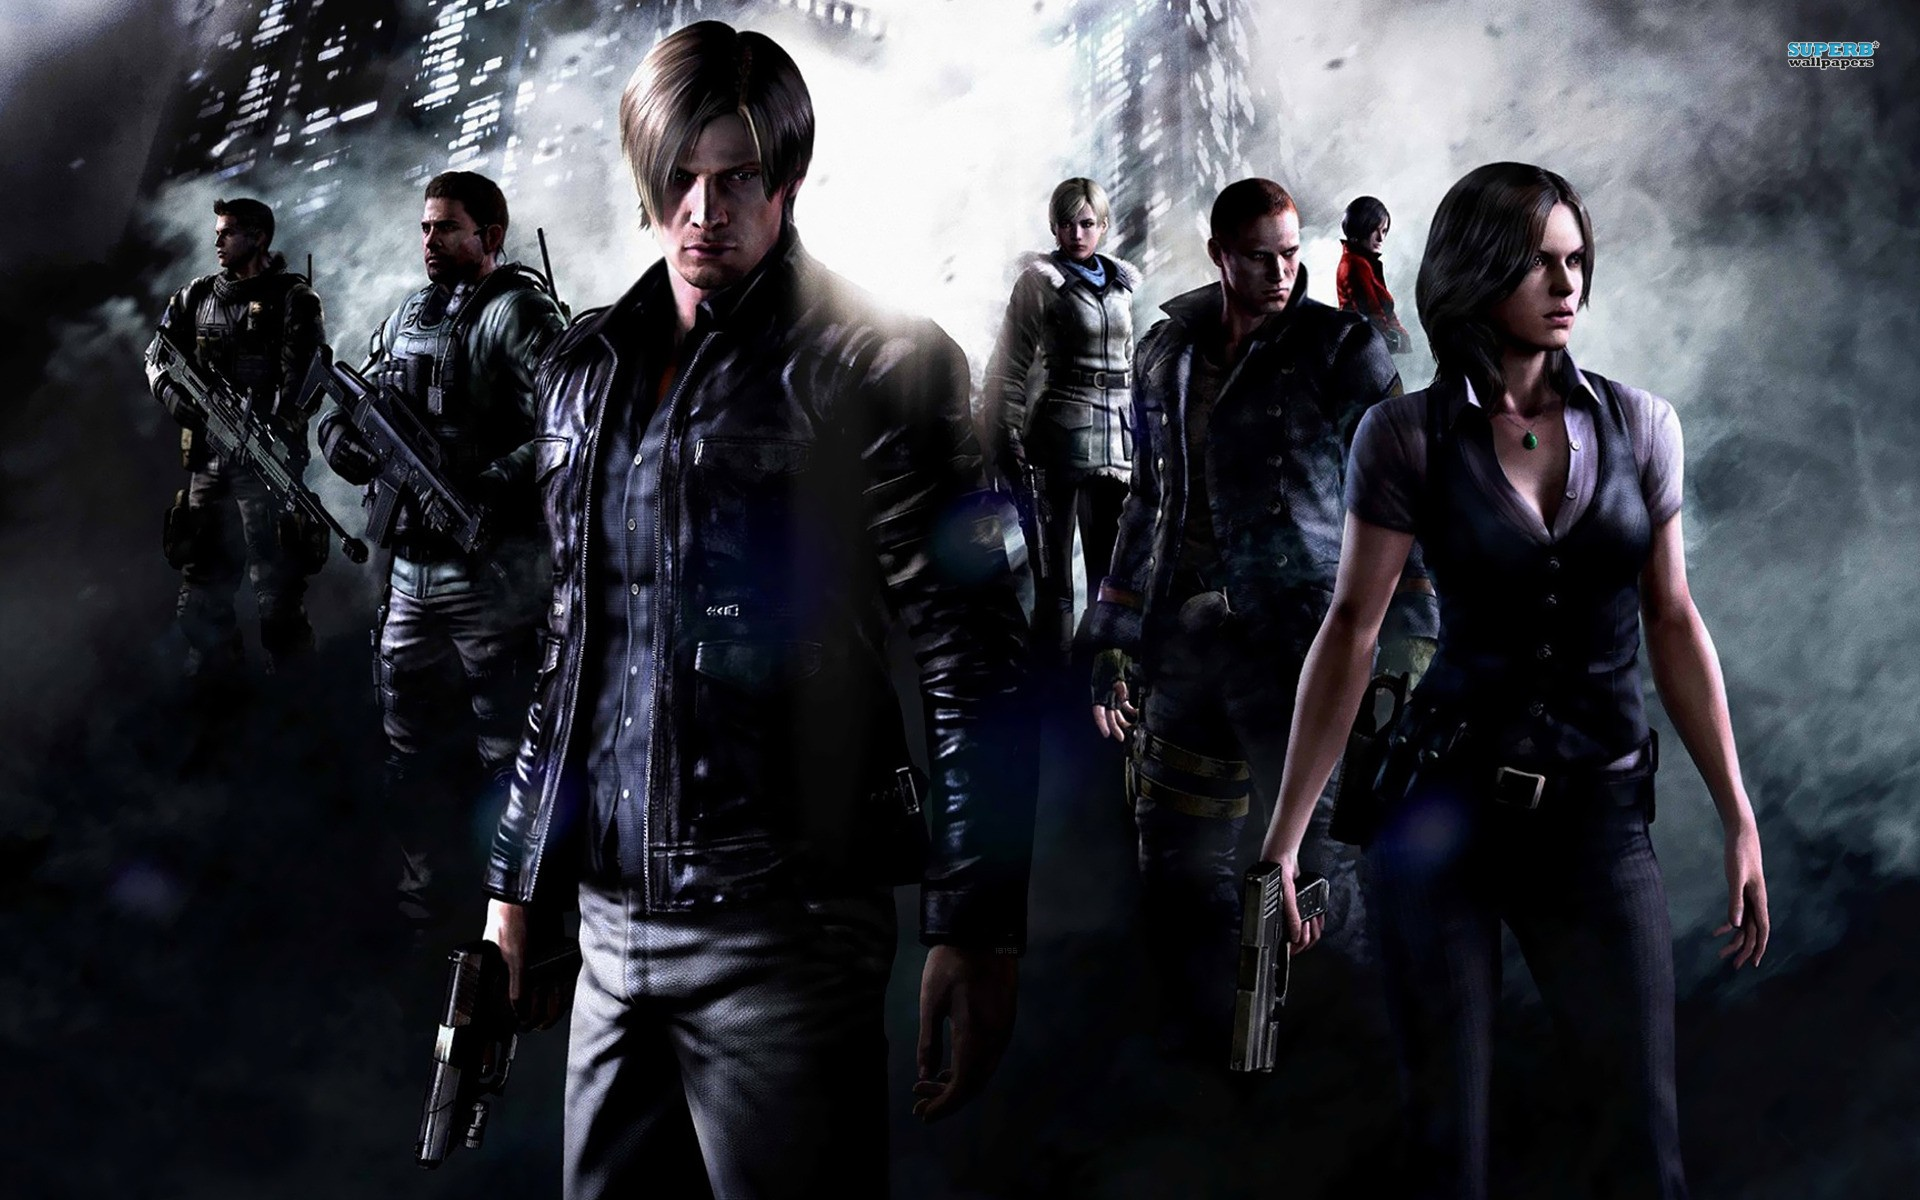 video games Resident Evil posters Resident Evil 6 screens